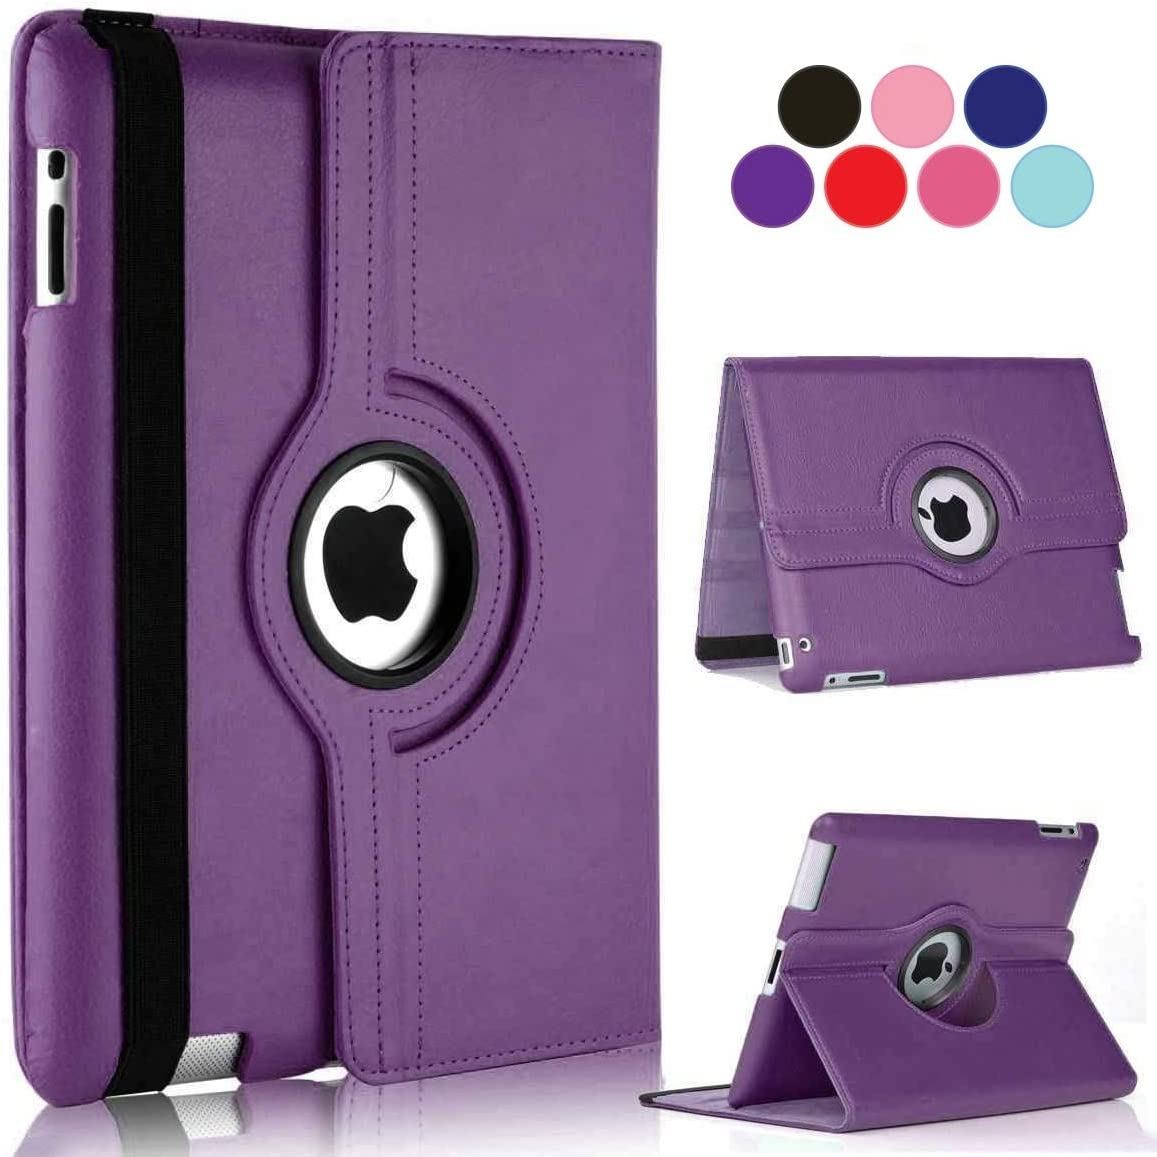 Vultic iPad Pro 12.9 Case - 360 Degree Rotating Stand [Auto Sleep/Wake] Folio Leather Smart Cover Case for Apple iPad Pro 12.9 inch [2nd Gen 2017] & [1st Gen 2015] (Purple)